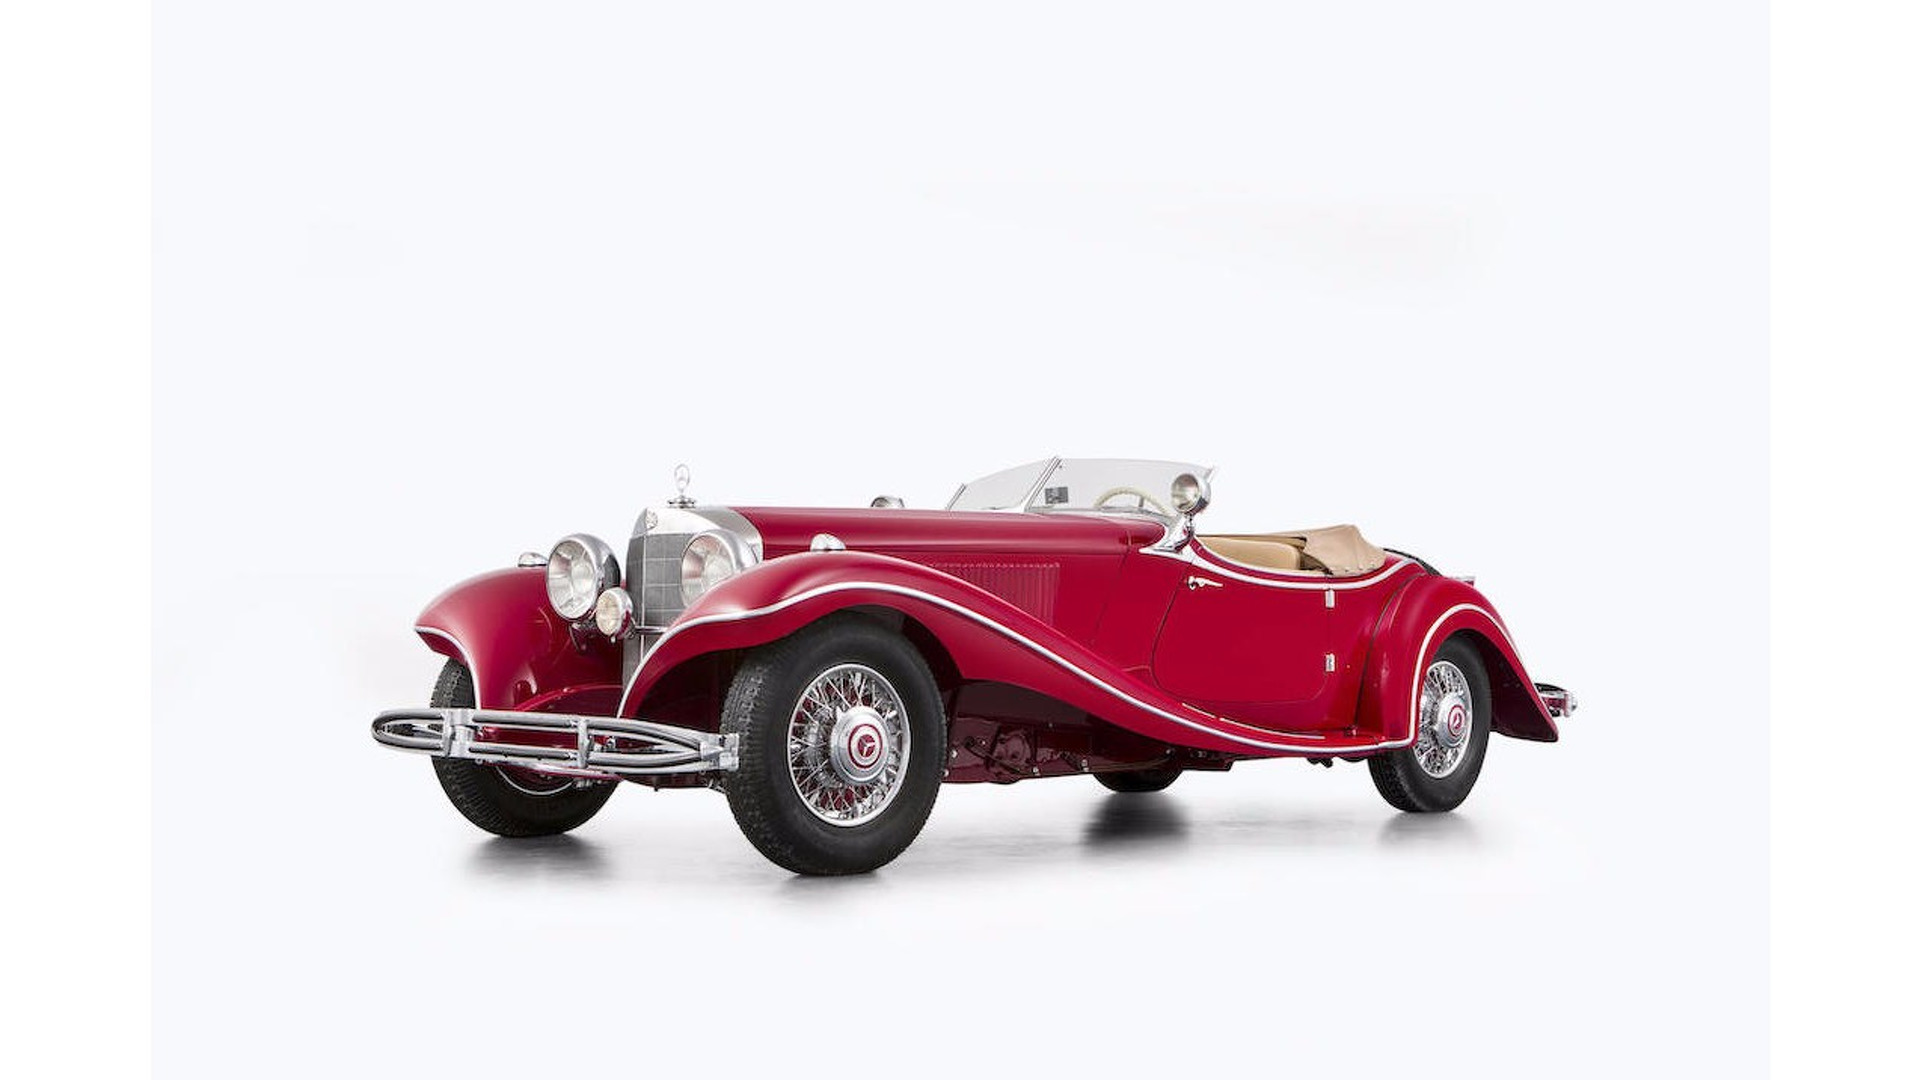 Stolen WWII era Mercedes 500K expected to get $7.7M at auction